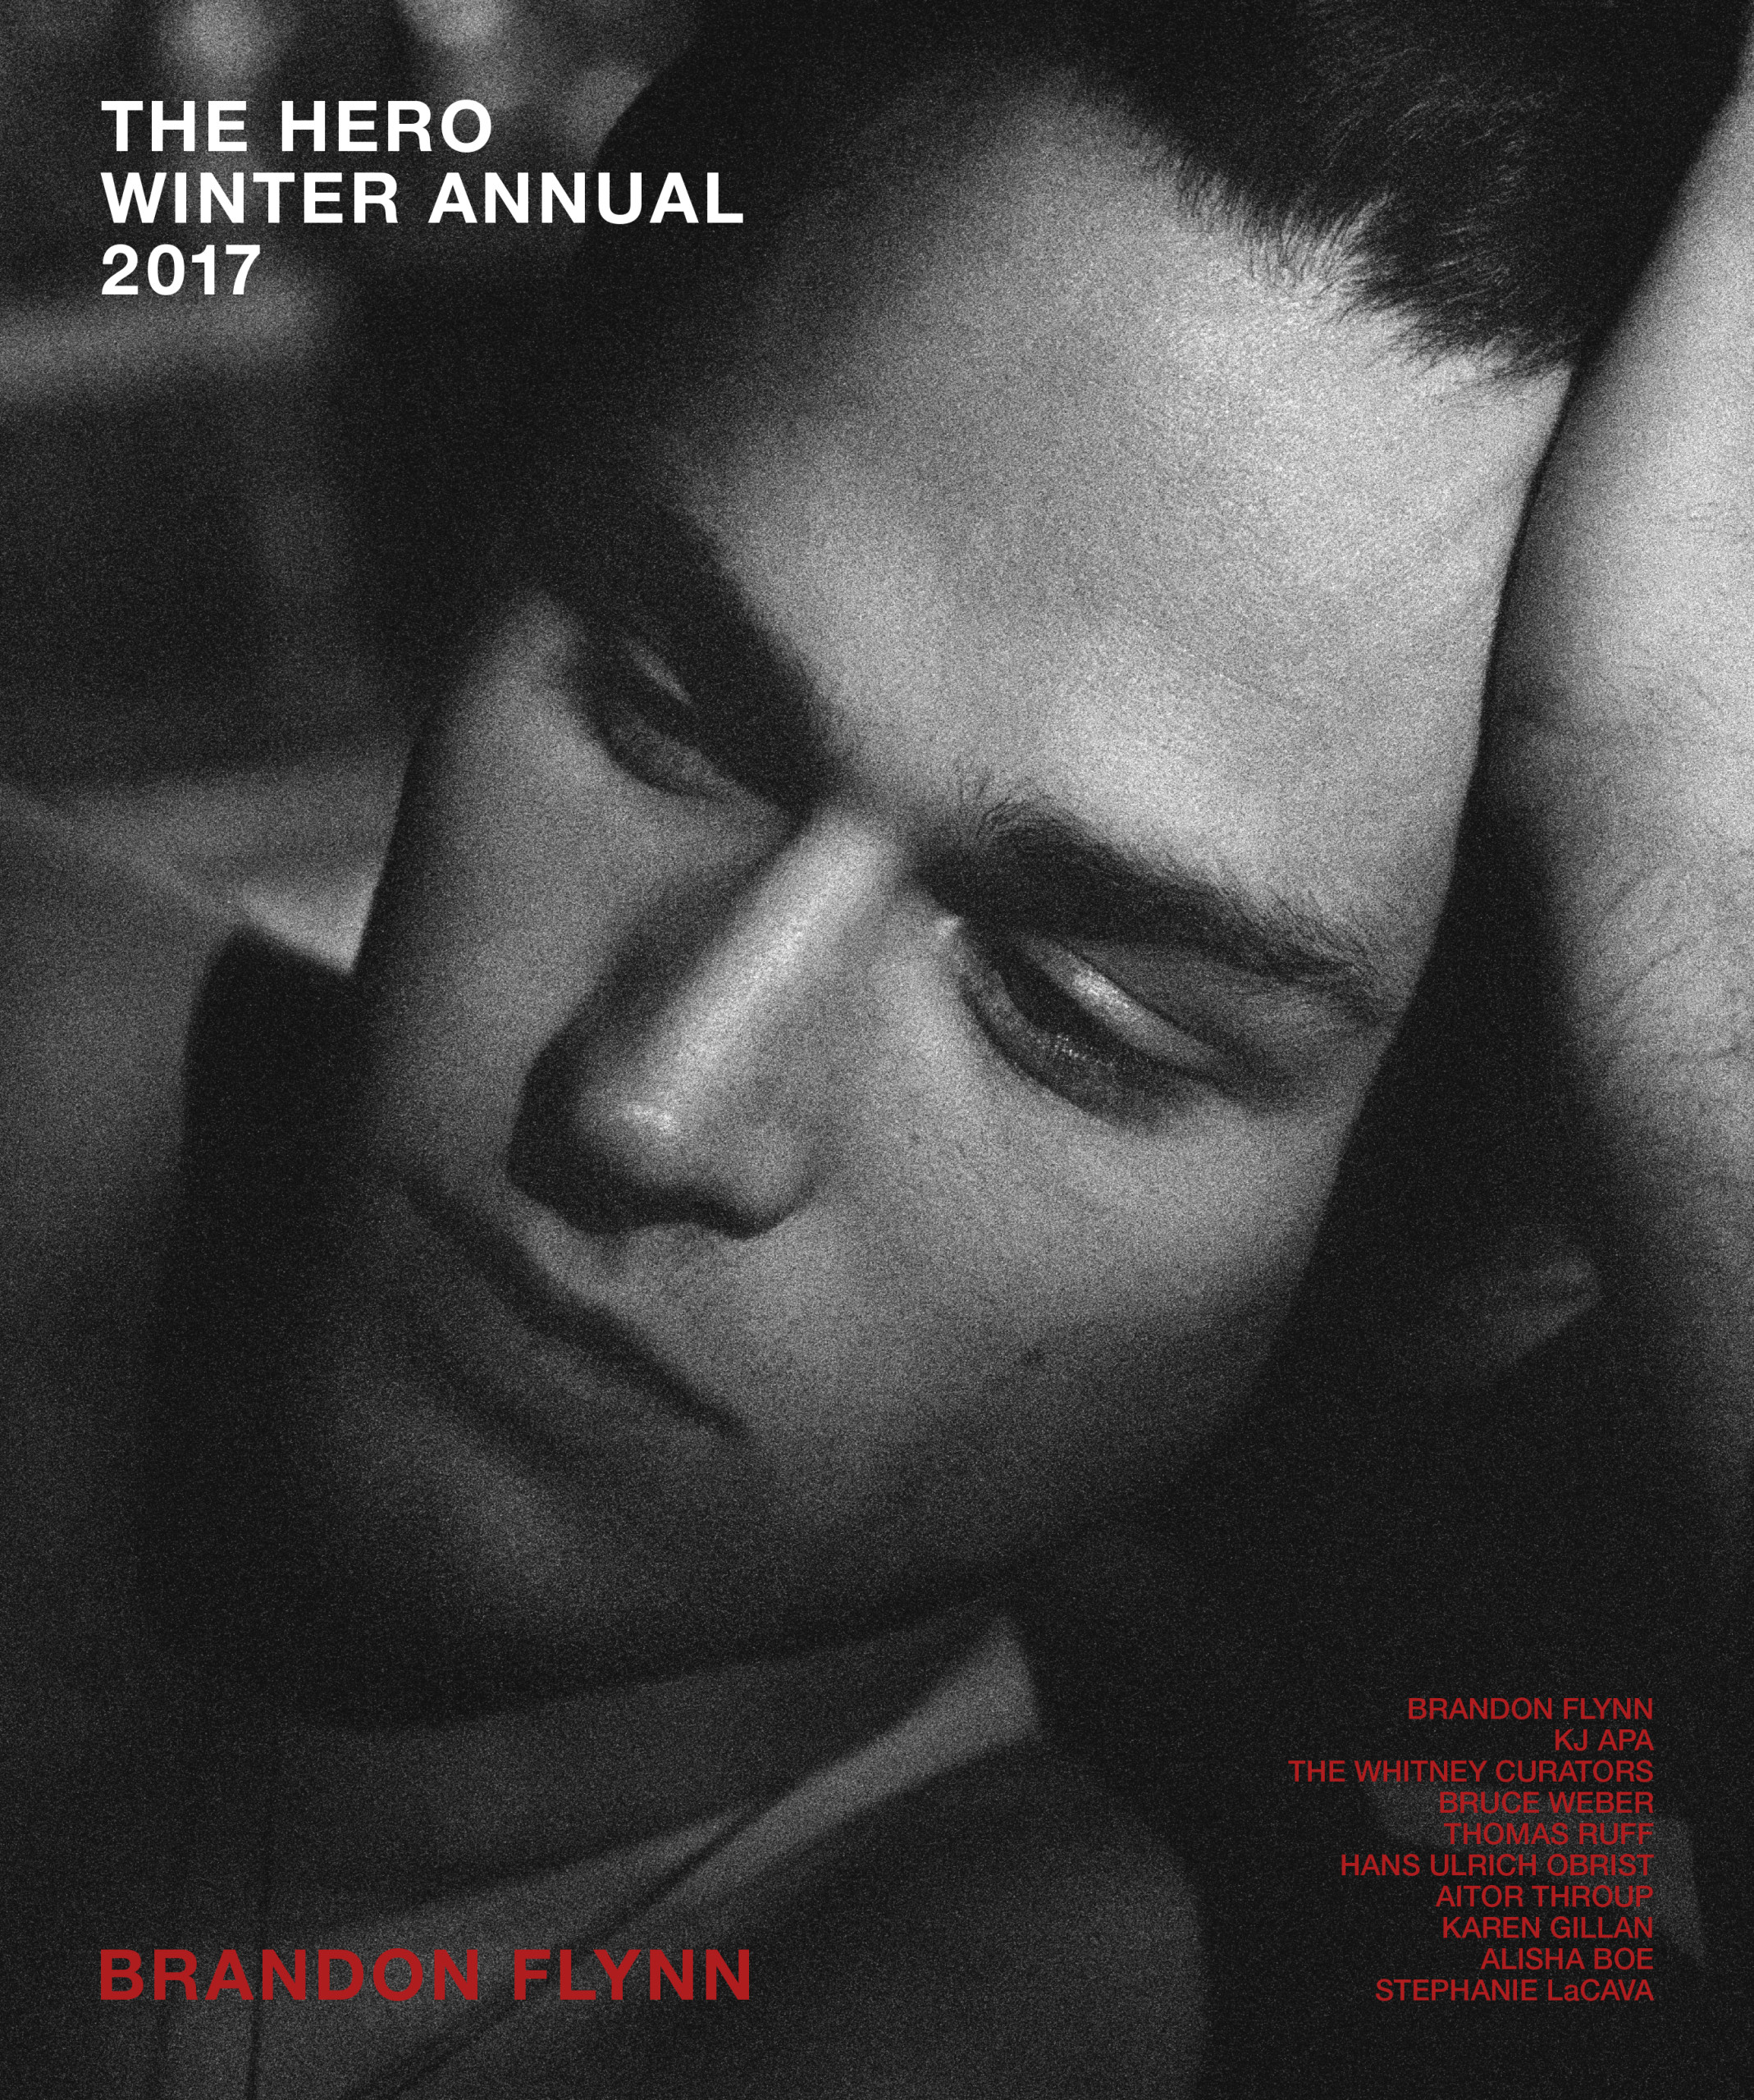 HERO-WINTER-ANNUAL-2017-BRANDON-FLYNN_cover.jpg